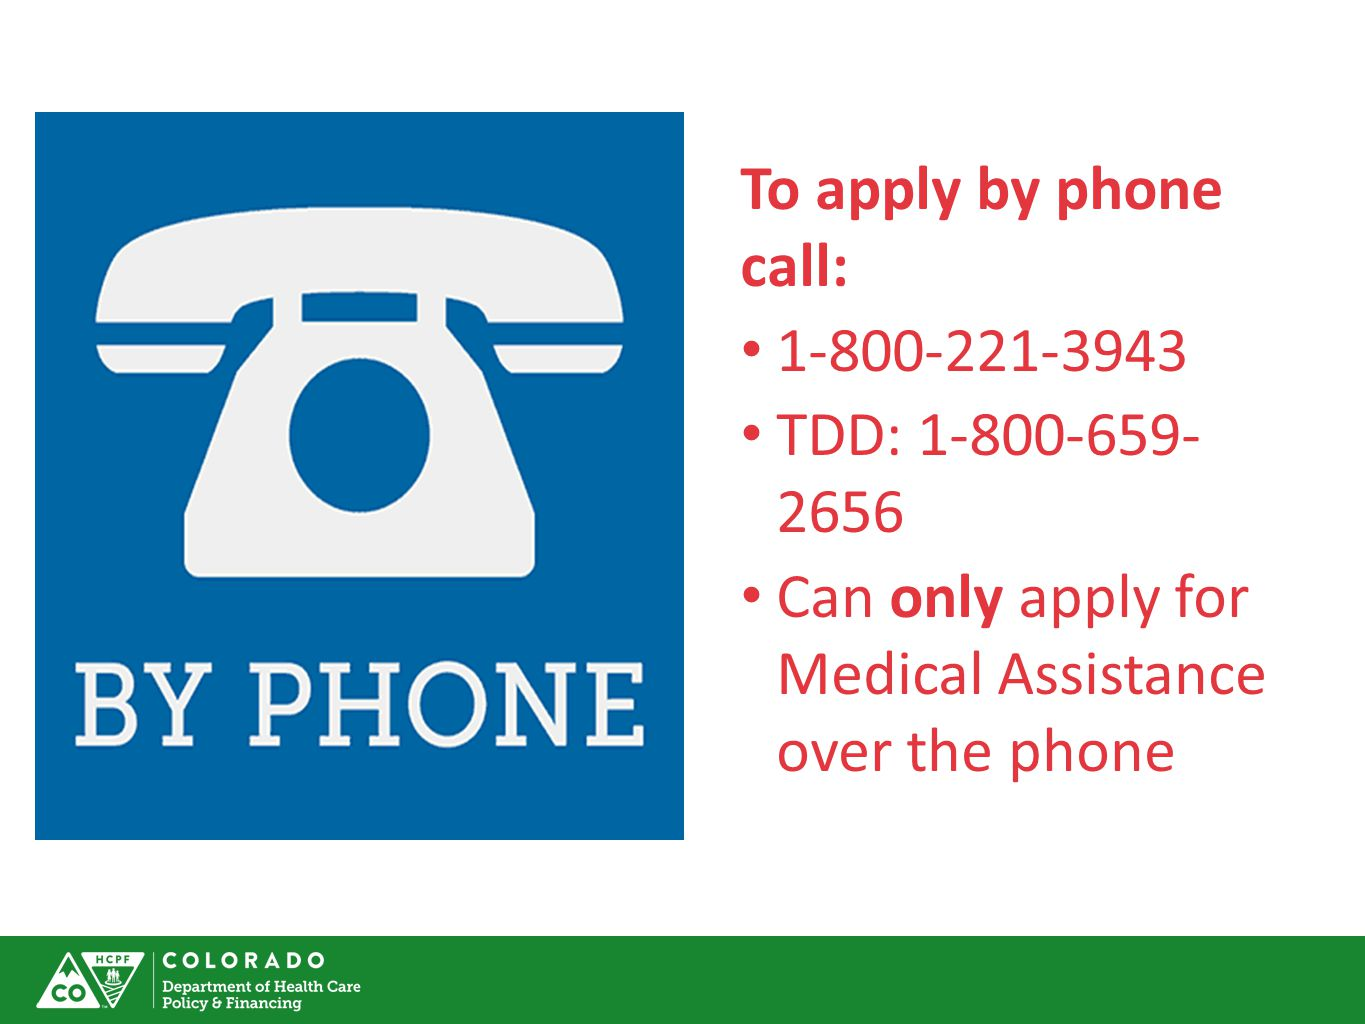 To apply by phone call: 1-800-221-3943 TDD: 1-800-659- 2656 Can only apply for Medical Assistance over the phone